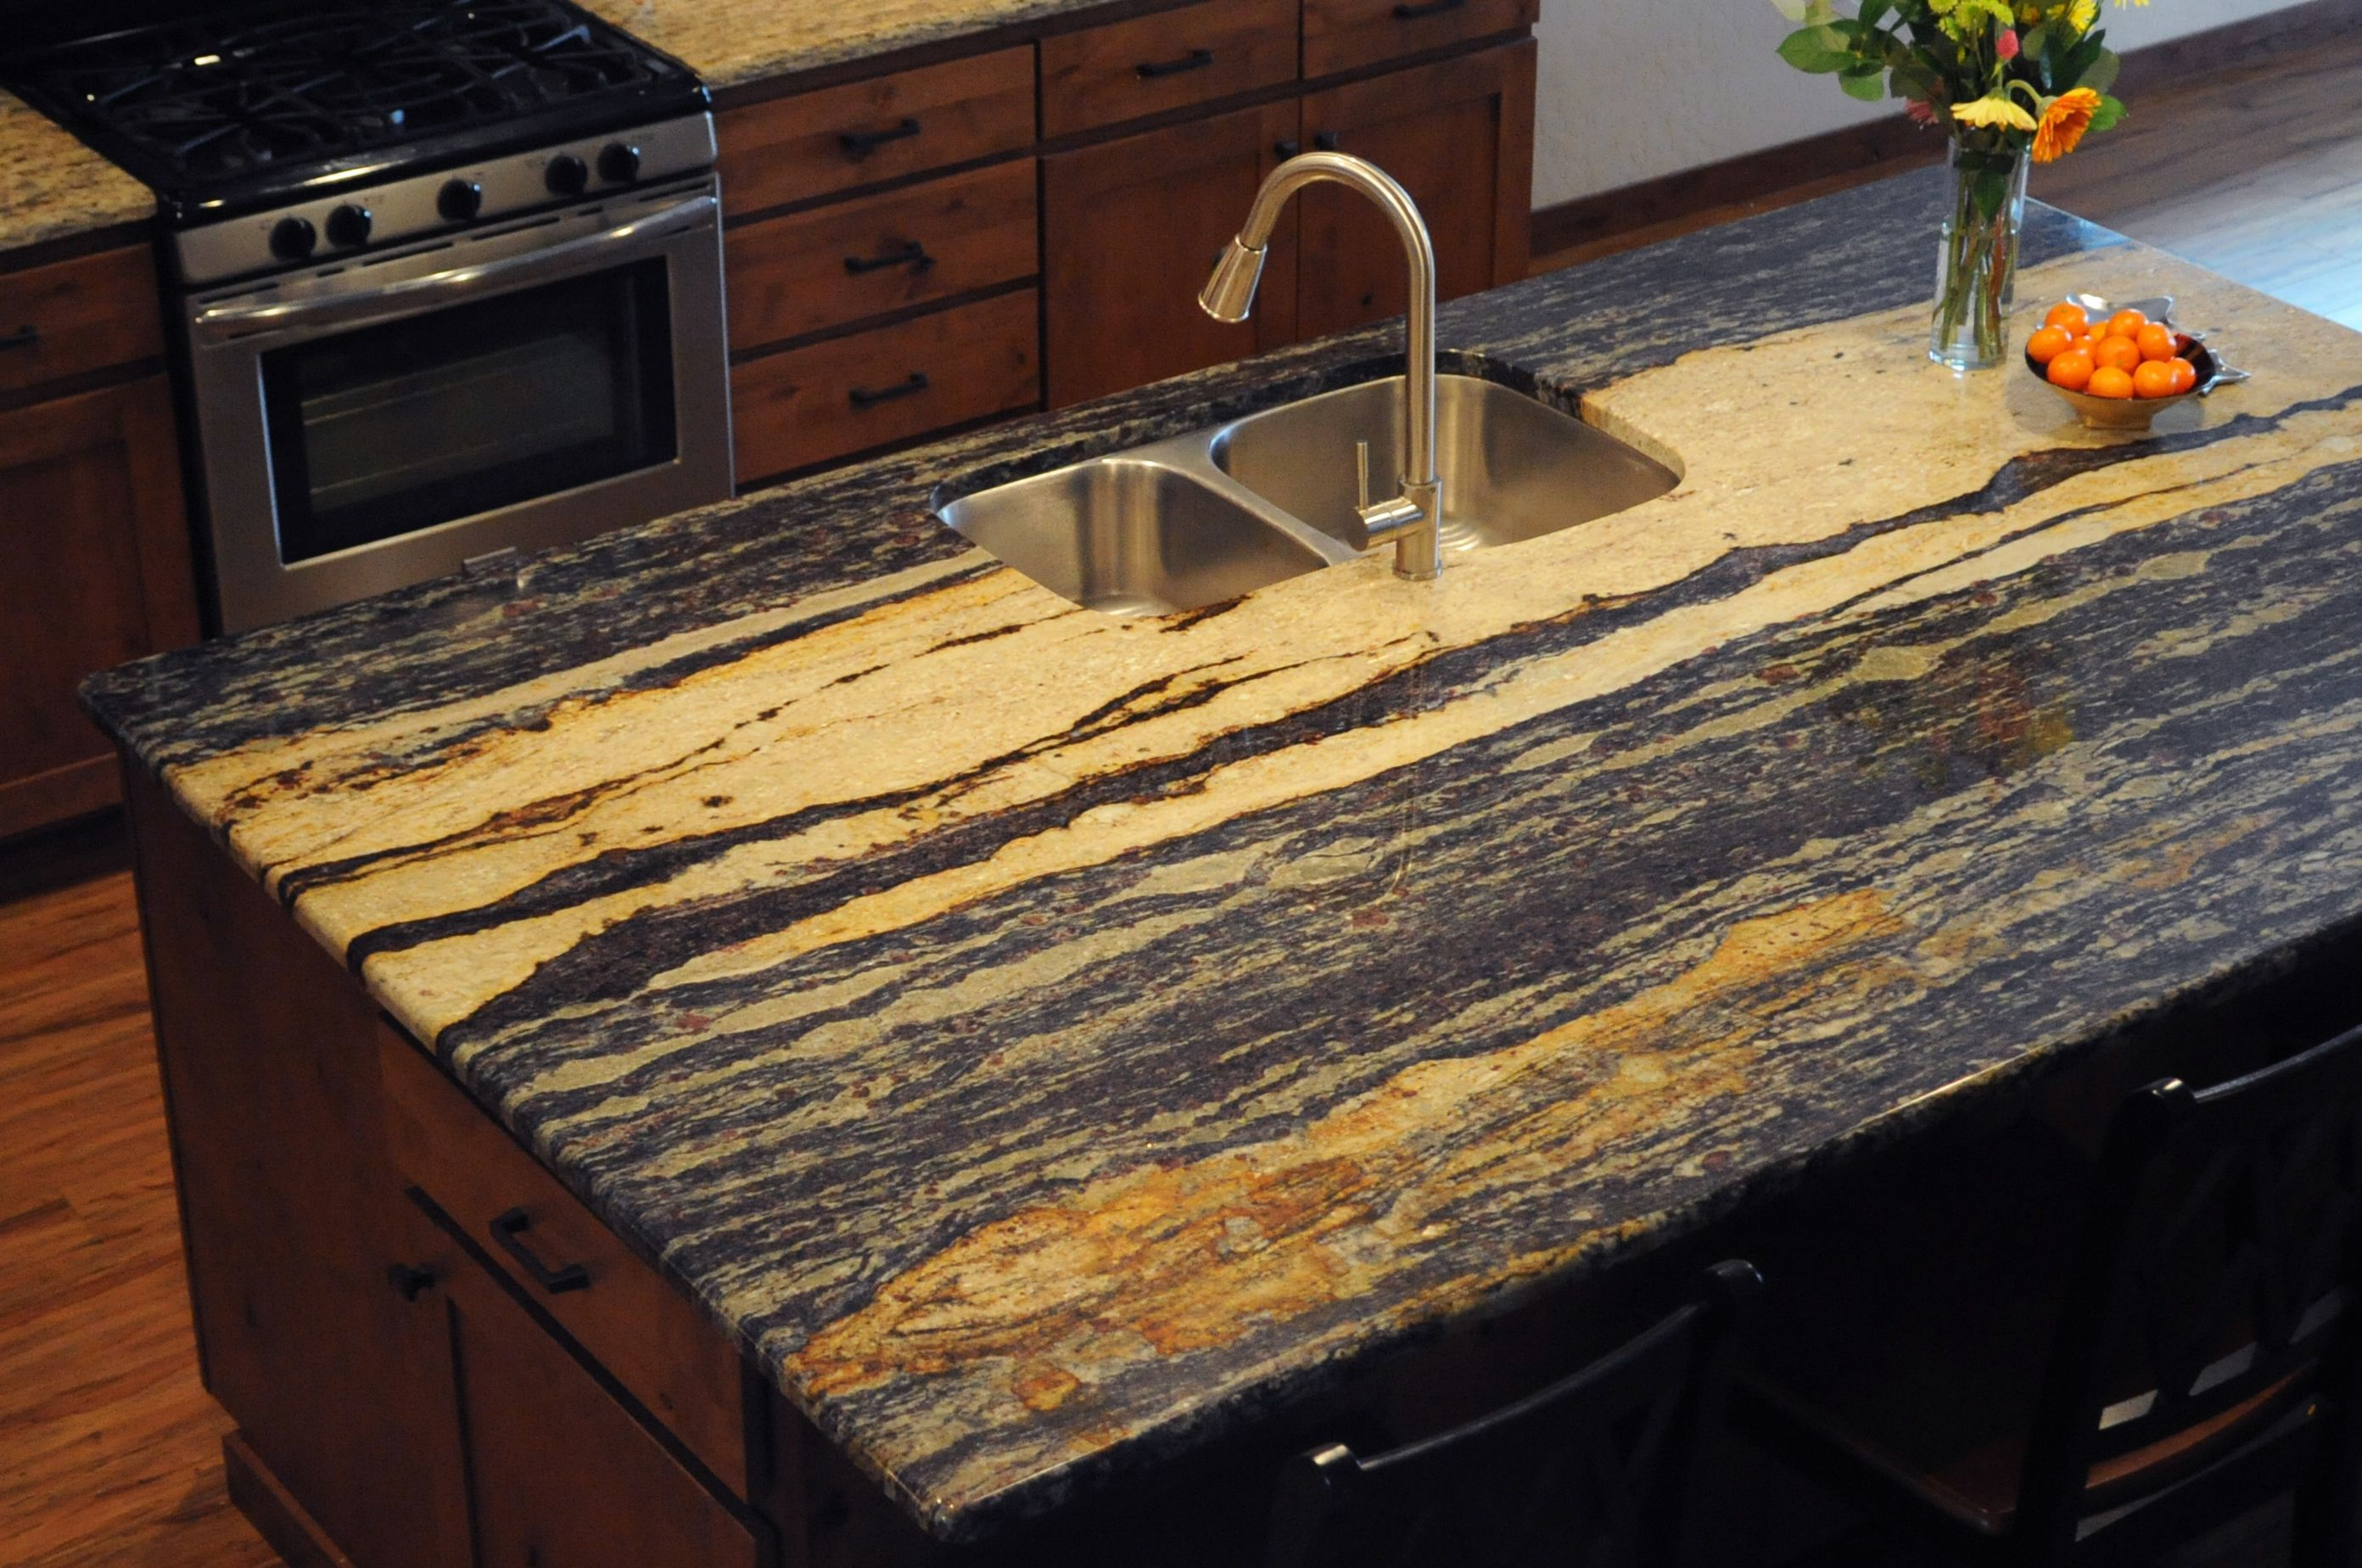 large granite countertop with garnets installed in a timber river rh pinterest com